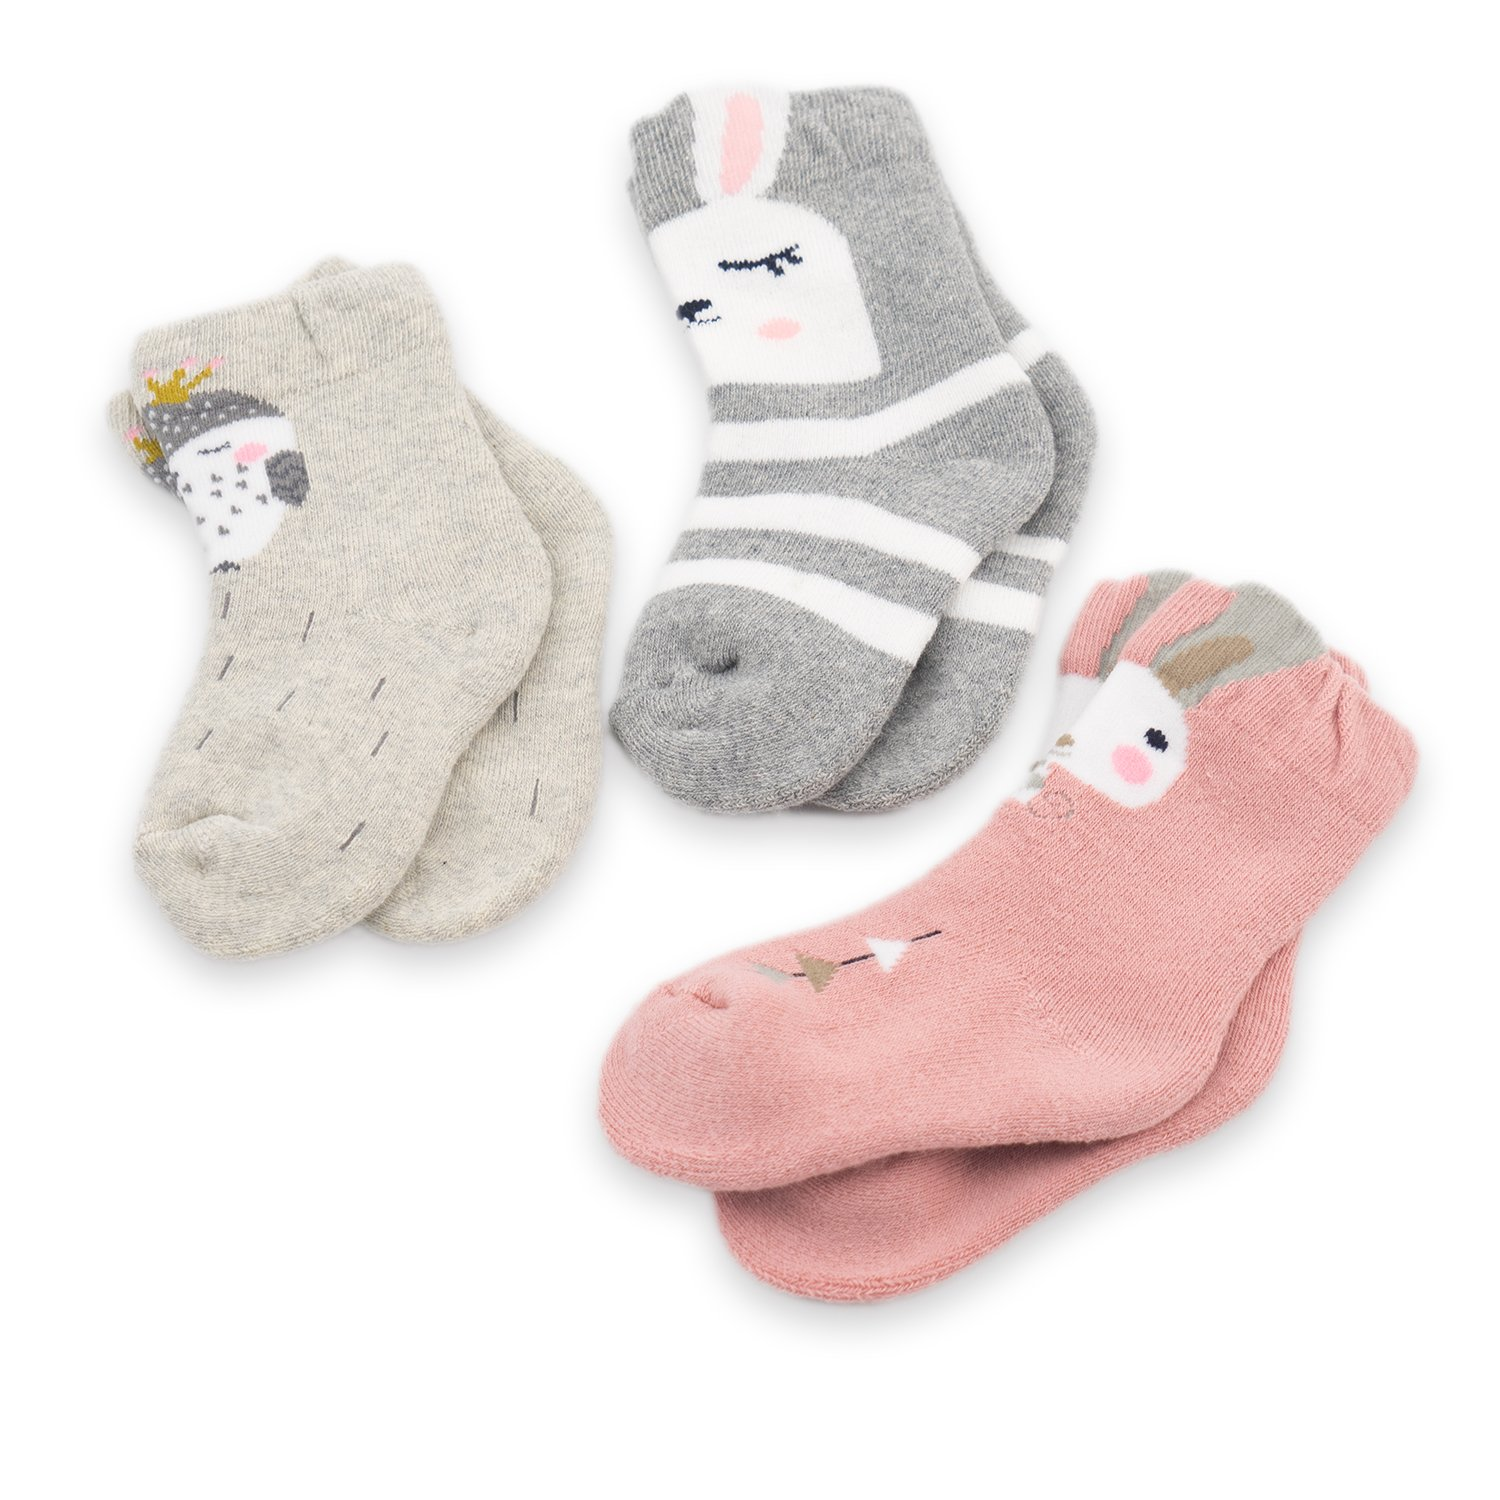 CoCoCute Baby Socks - 3 Pairs Thick Winter Toddler Socks Infant Kid Cotton Crew Socks